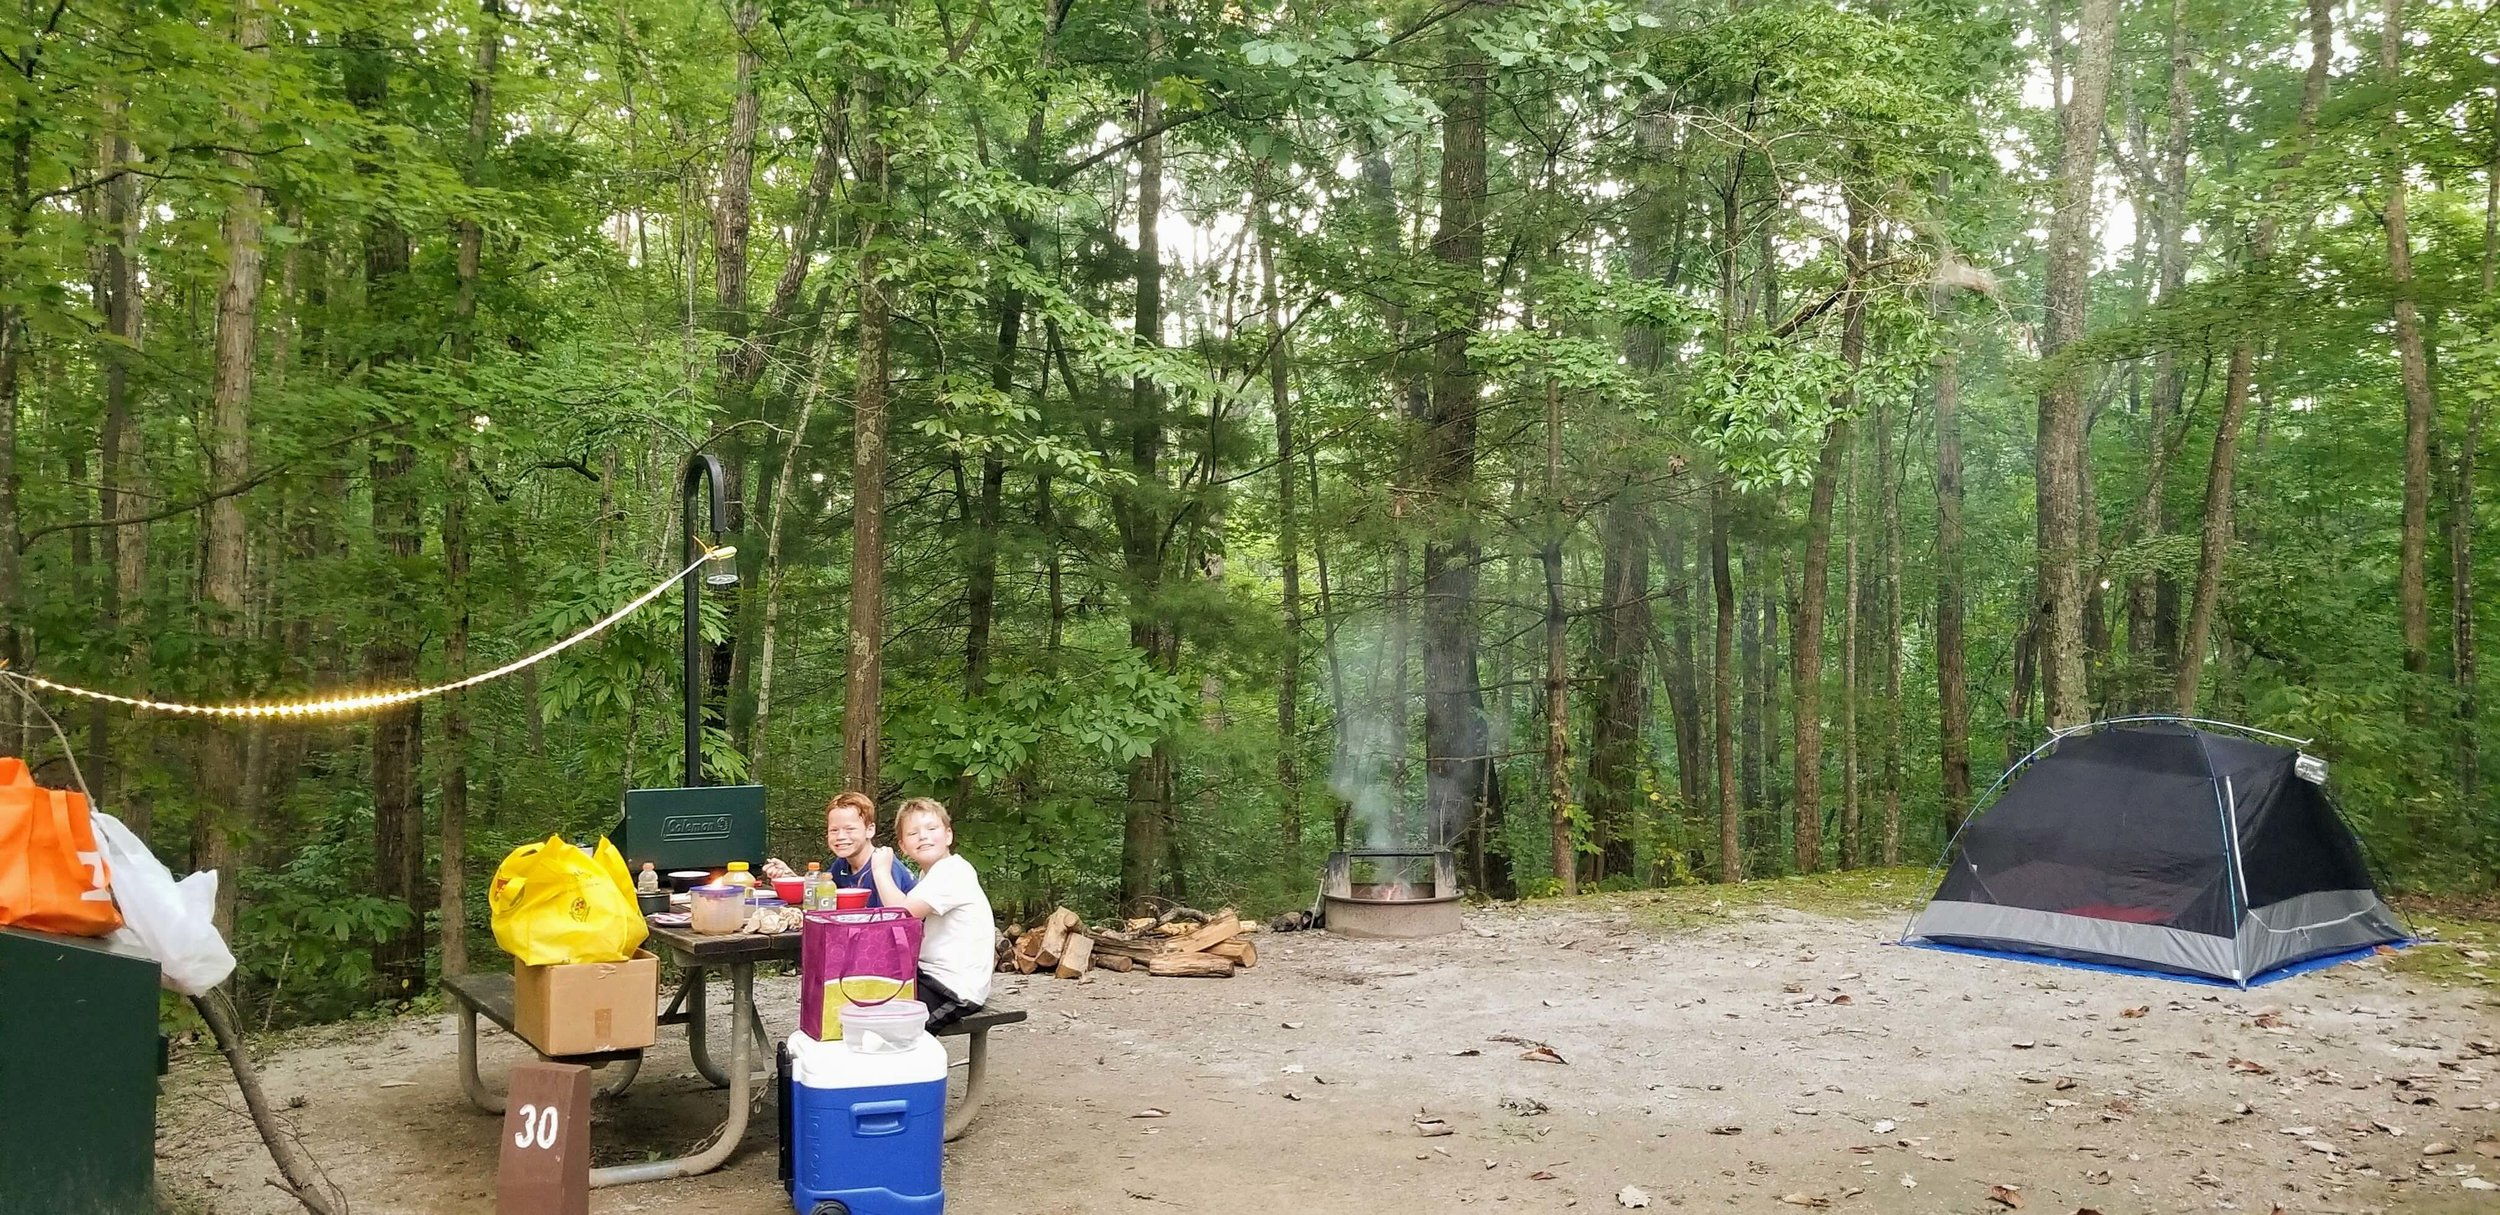 Camping at Big South Fork National River and Recreationl Area.